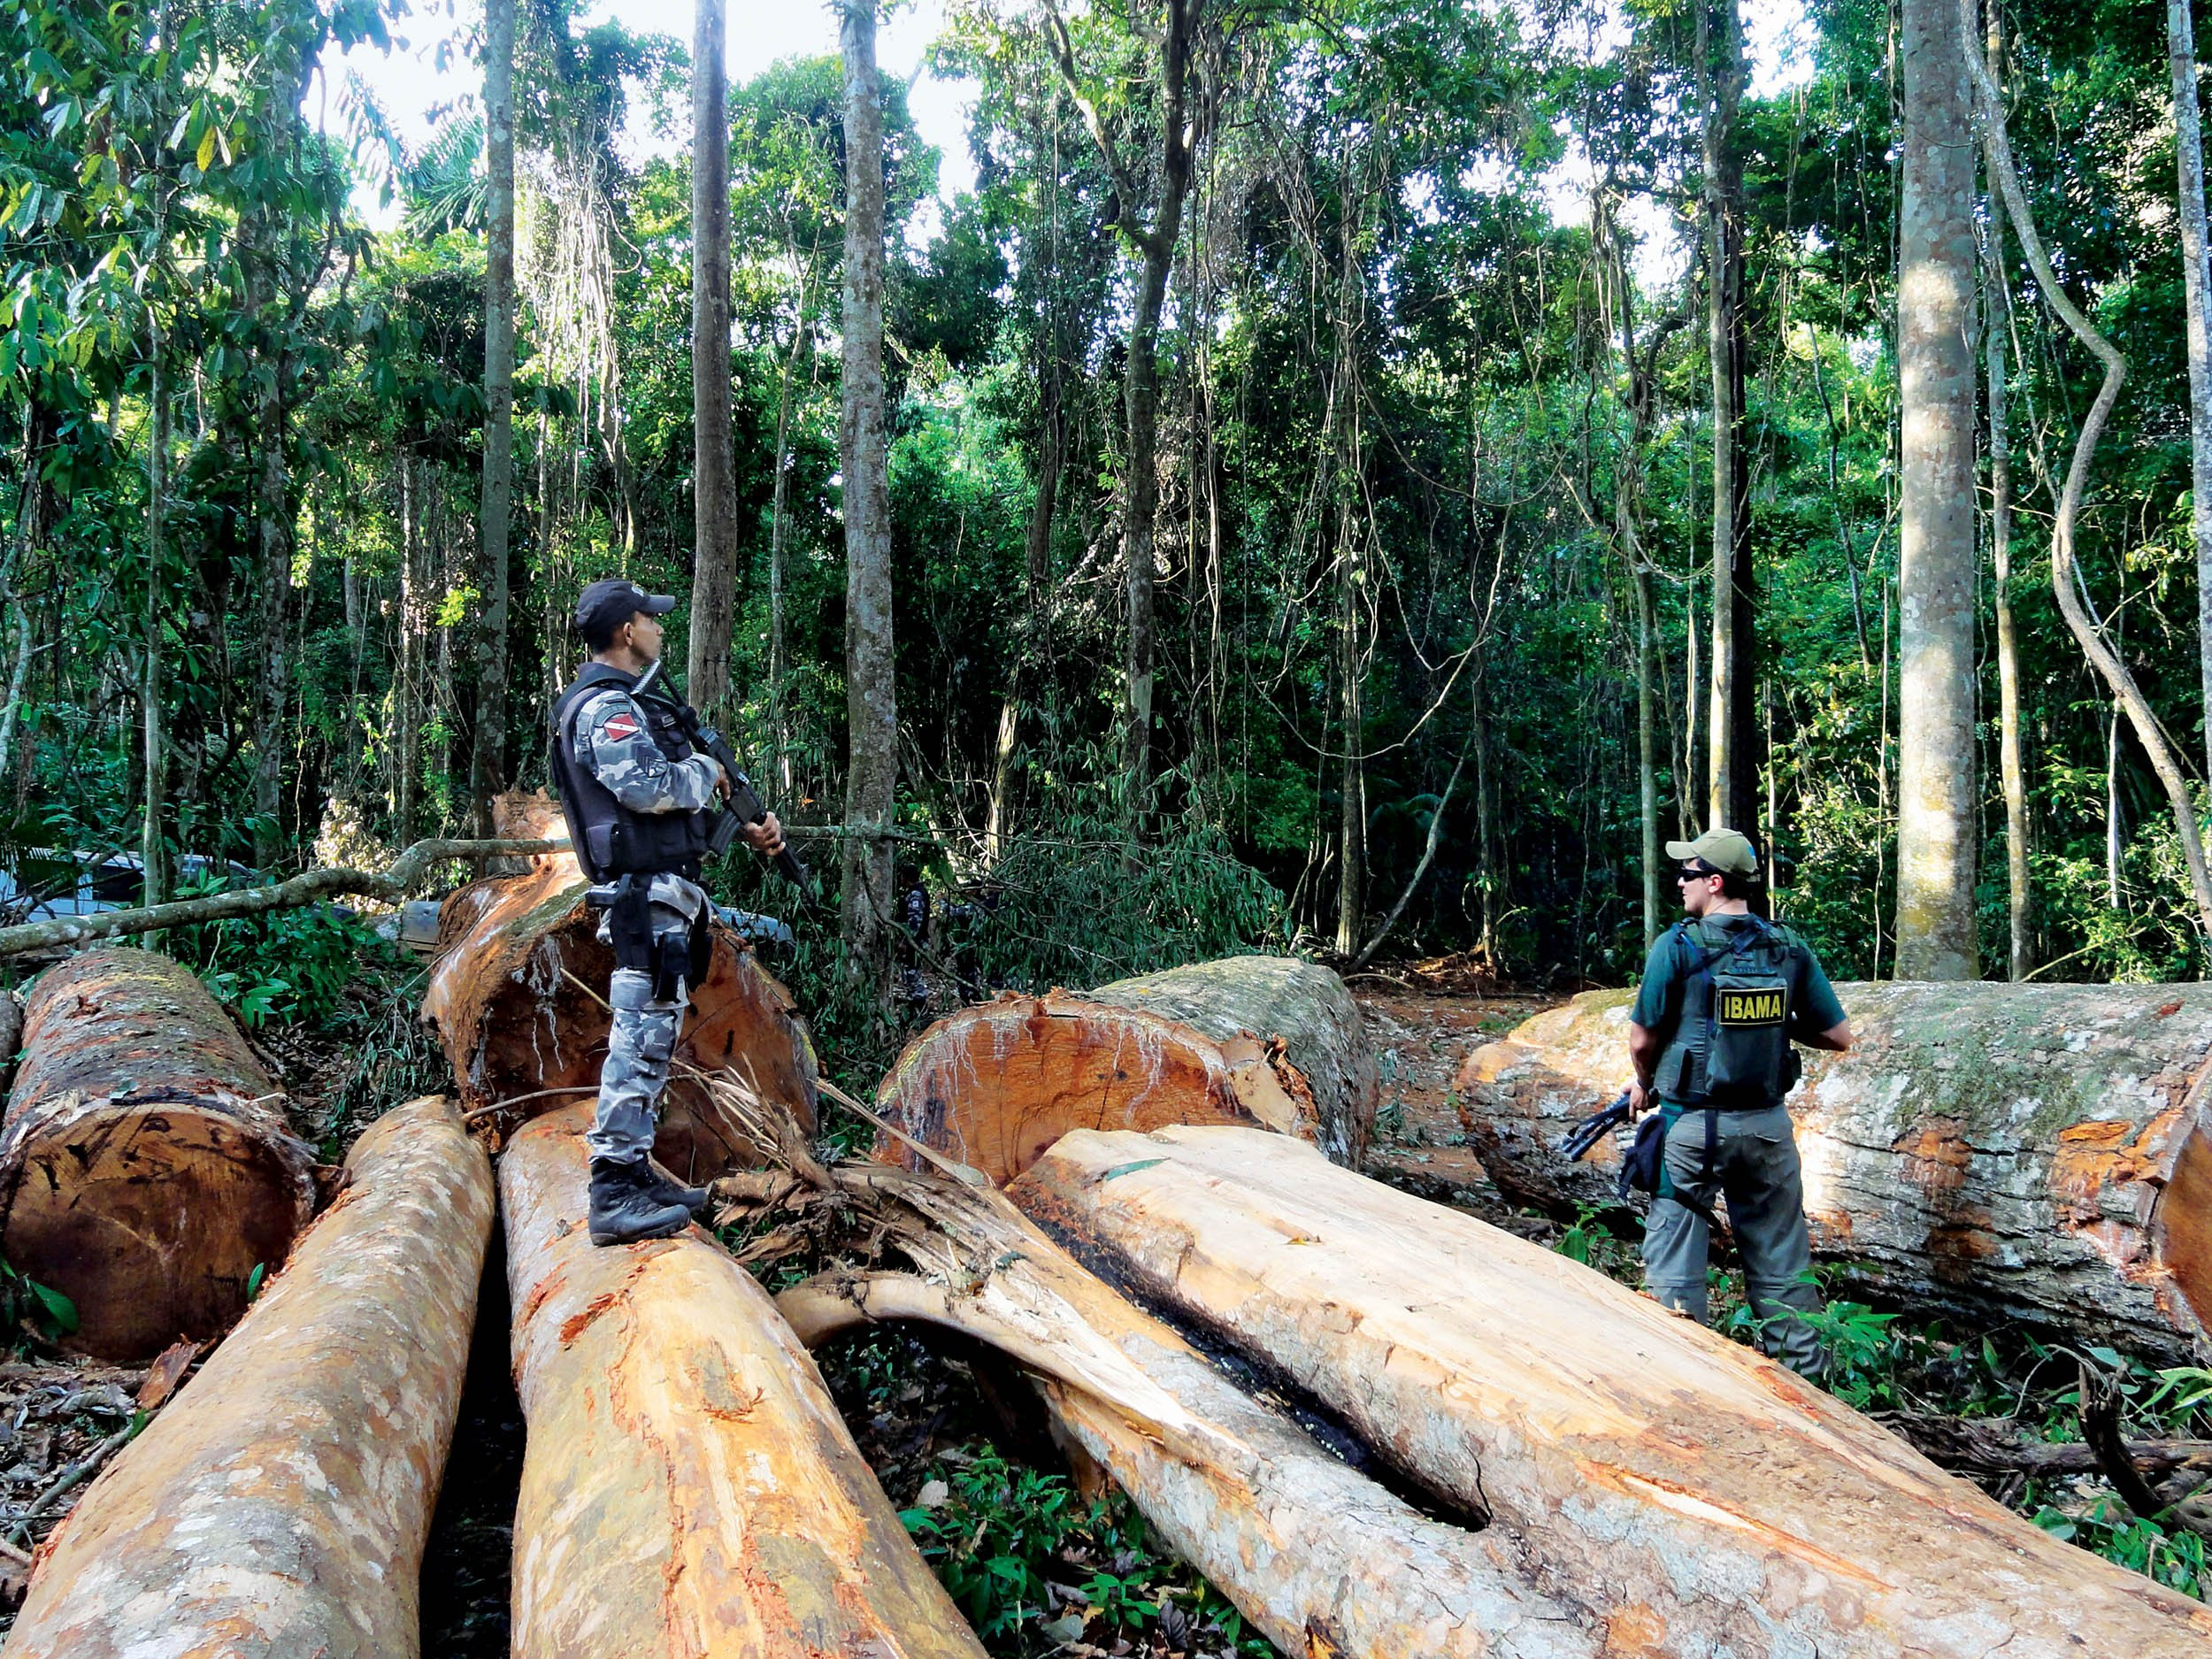 Brazil's Deforestation Rates Are on the Rise Again